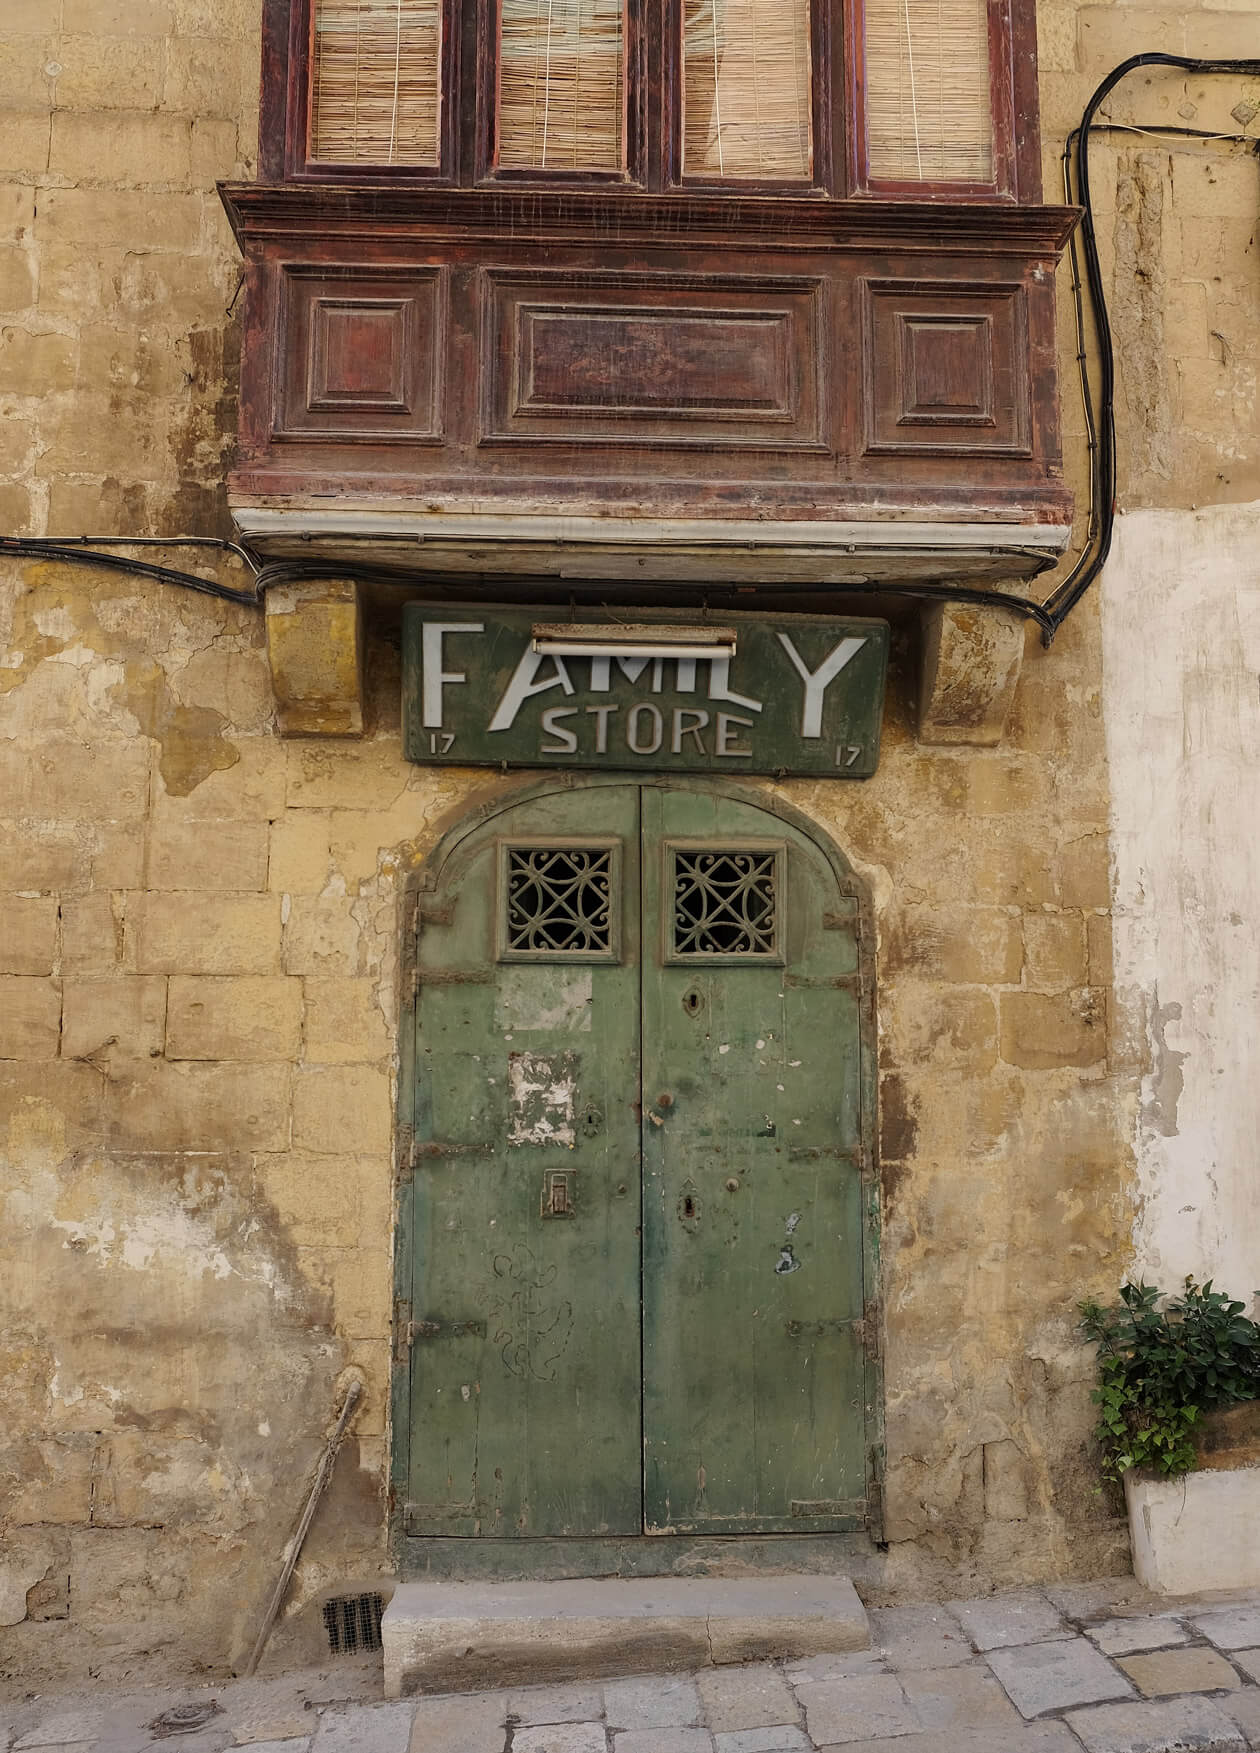 One of the interesting old shop signs in Valletta